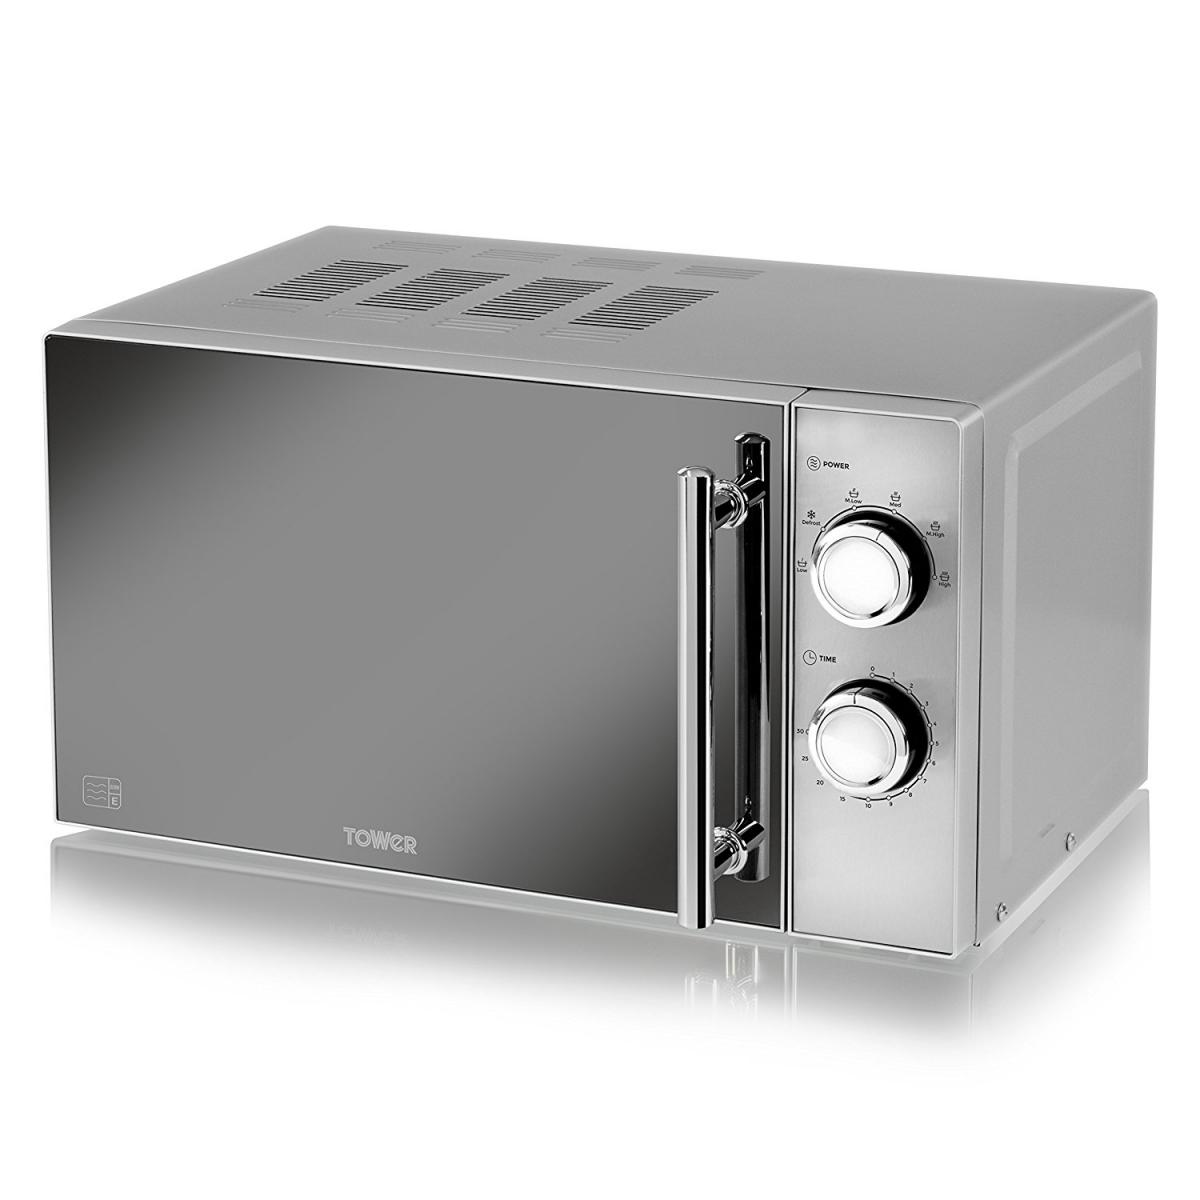 800W Microwave with Mirror Door - Silver